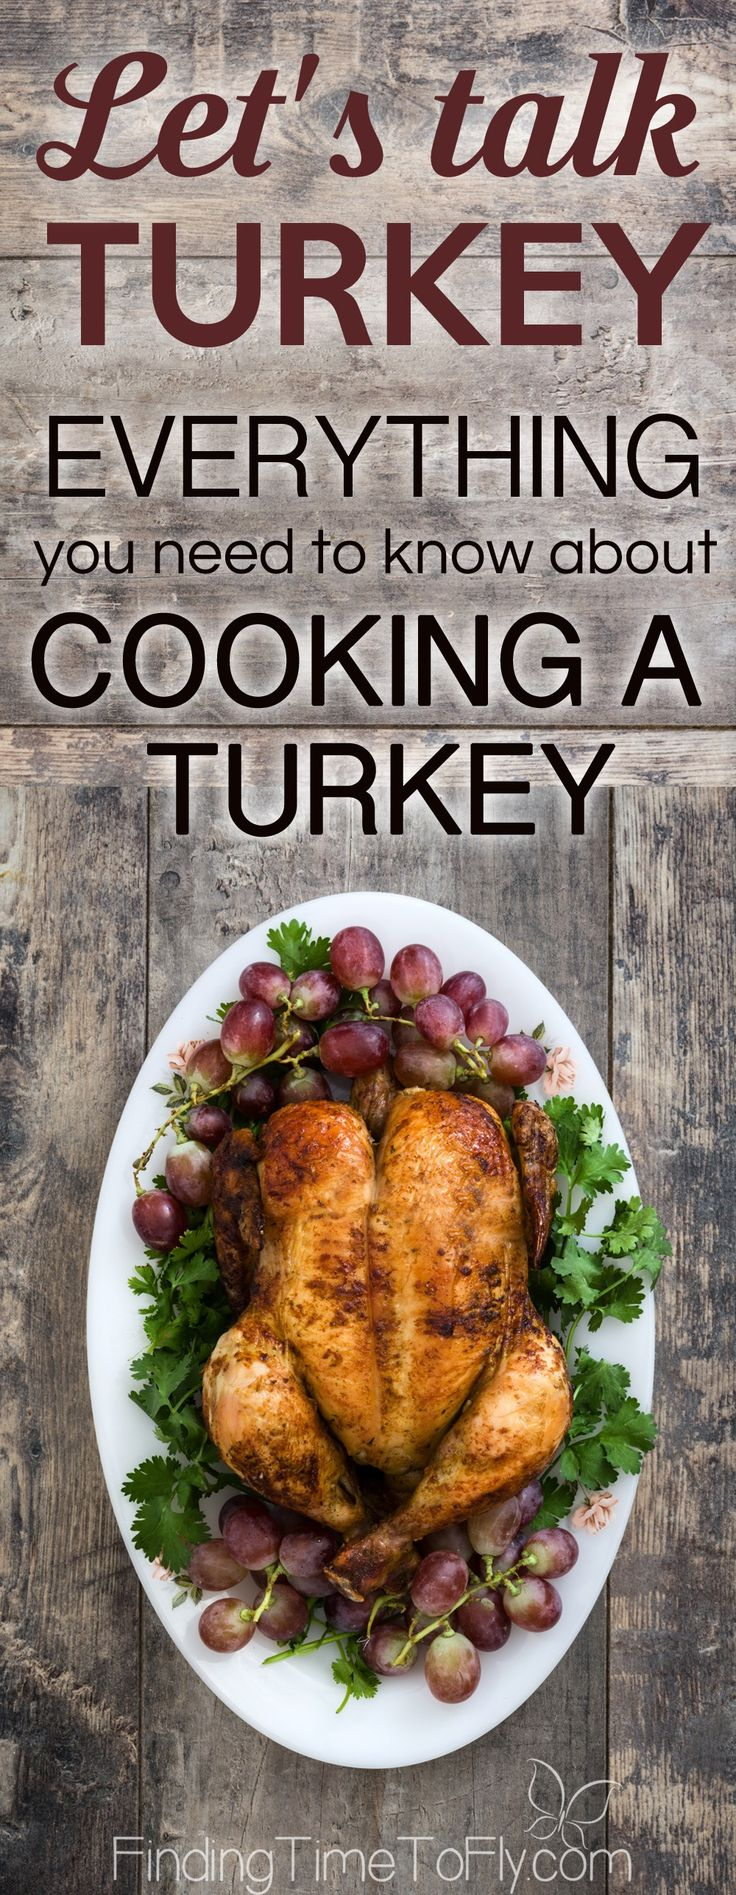 This is what I've been looking for! Everything about cooking a turkey in one place. How much turkey to buy, how to thaw a turkey, preparing a turkey for baking, and simple instructions for roasting a turkey.